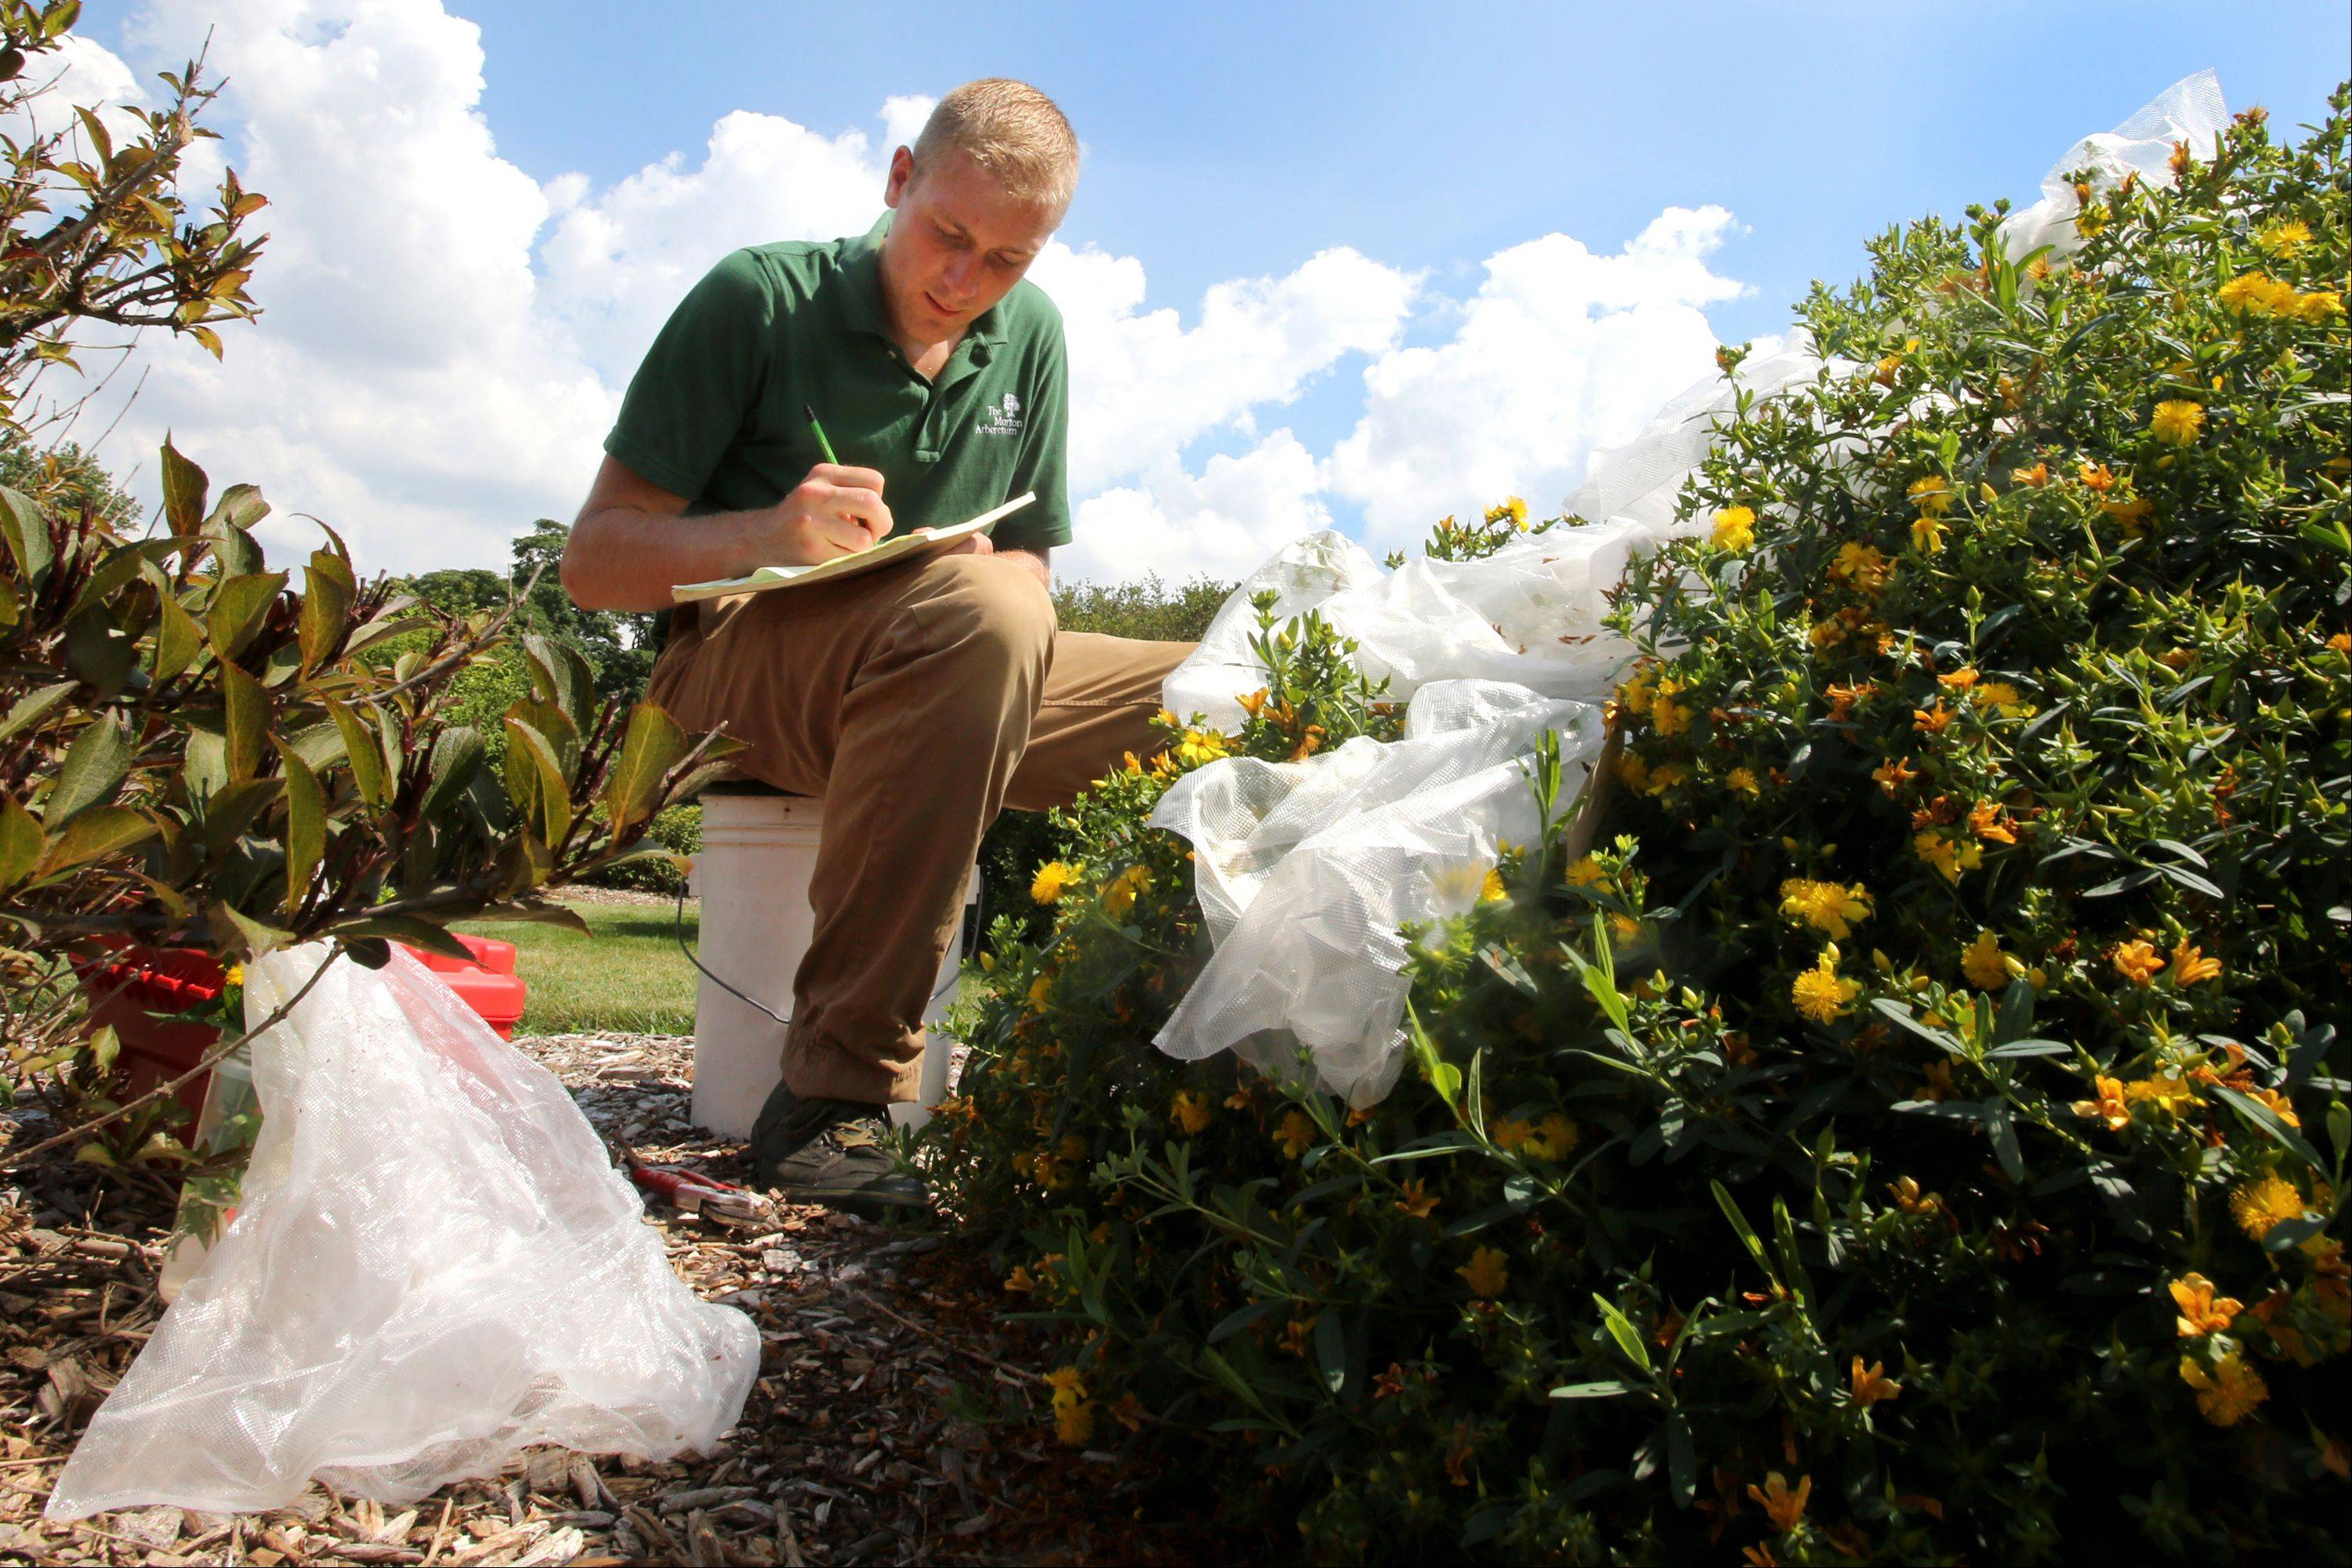 Joe Rothleutner, tree improvement specialist for the Morton Arboretum, documents his St. John's Wort plant data. White bags are kept over the newly pollinated plant, protecting it from pests and cross contamination.